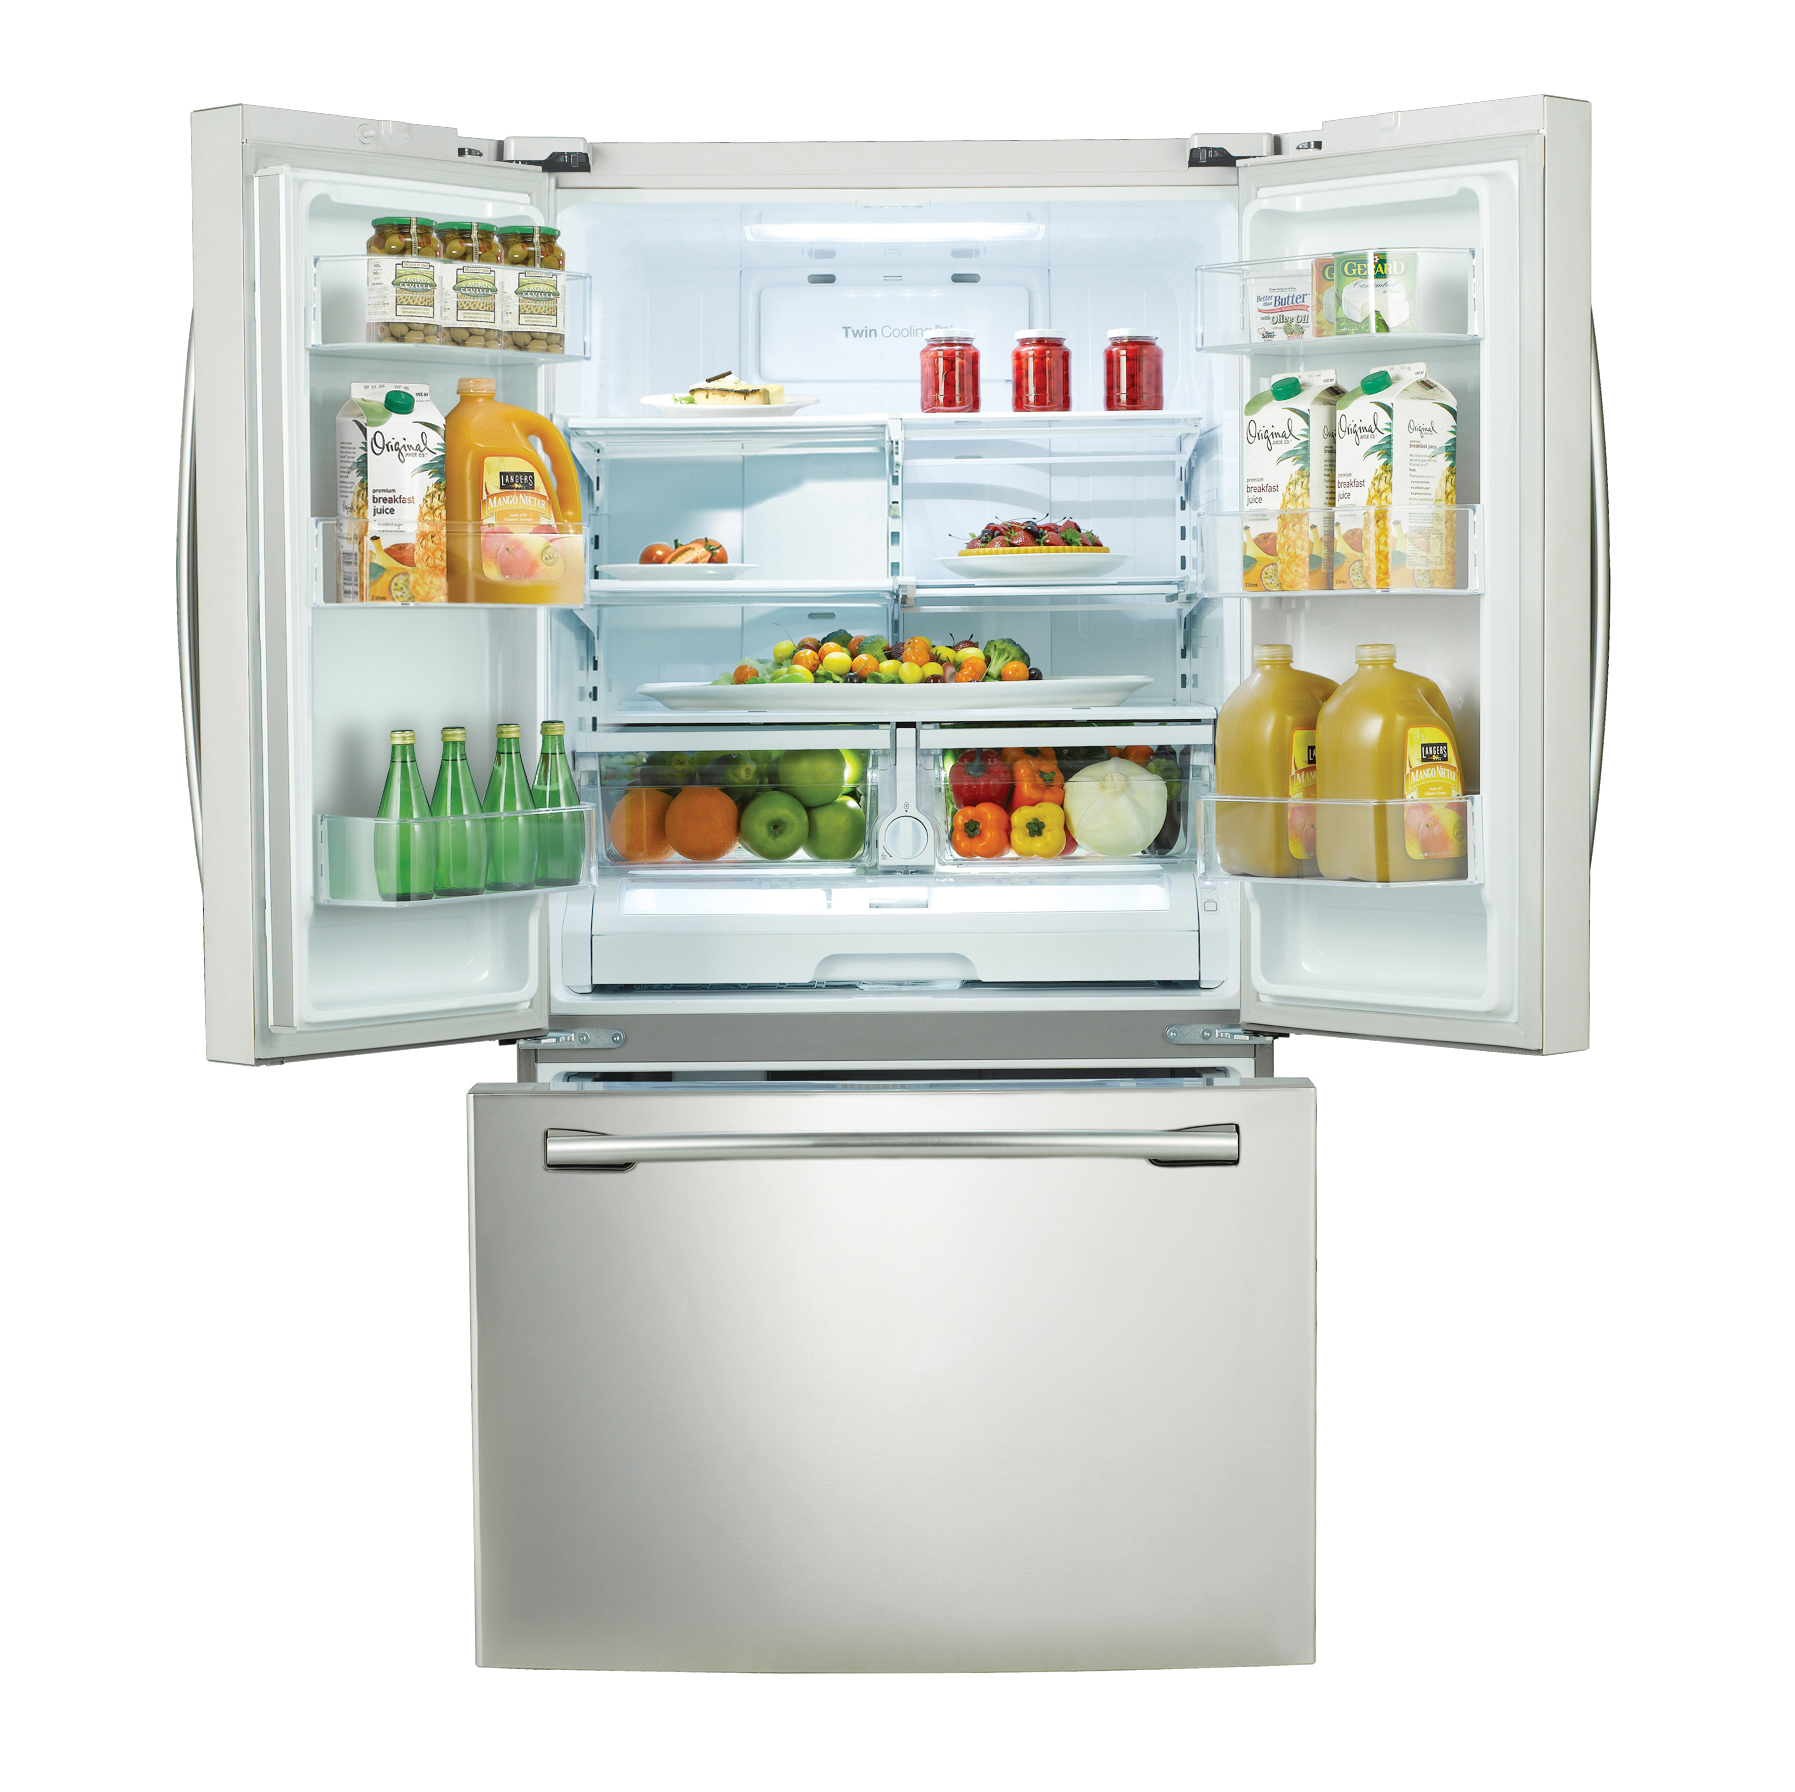 Samsung 26 cu.ft. French Door Refrigerator w/  Filtered Water Dispenser - White